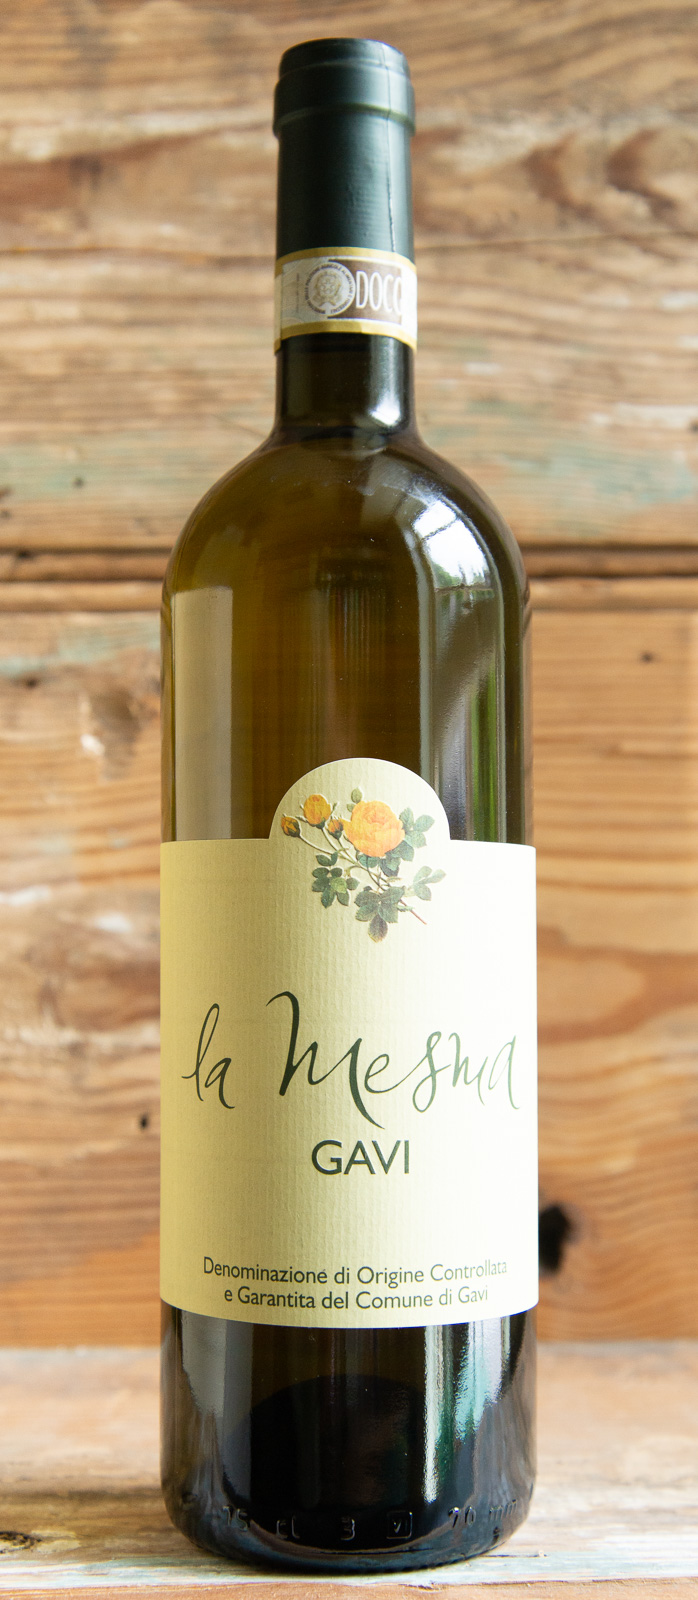 La Mesma Gavi Gialla 2016 - Origin: ItalyRetail: $19.95 | Sale $17.95La Mesma is a family business meticulously run by the three Rosina sisters: Paola, Francesca and Anna. La Mesma Gavi firstly offers us its delightful, straw color, reinforced by the delicate aroma of fresh fruit, tapping on light notes of apricot and citrus. A subtle breath of wild flowers and aromatic herbs rounds out the delicate fragrance. This pleasantly aromatic Gavi, with its decidedly elegant finish, can develop in the bottle for several years. Not only is this wine an excellent choice as an aperitif, it is also the ideal companion for seafood or vegetable starters and main courses, as well as grilled or baked seafood and fish, white meats and poultry.100% Cortese